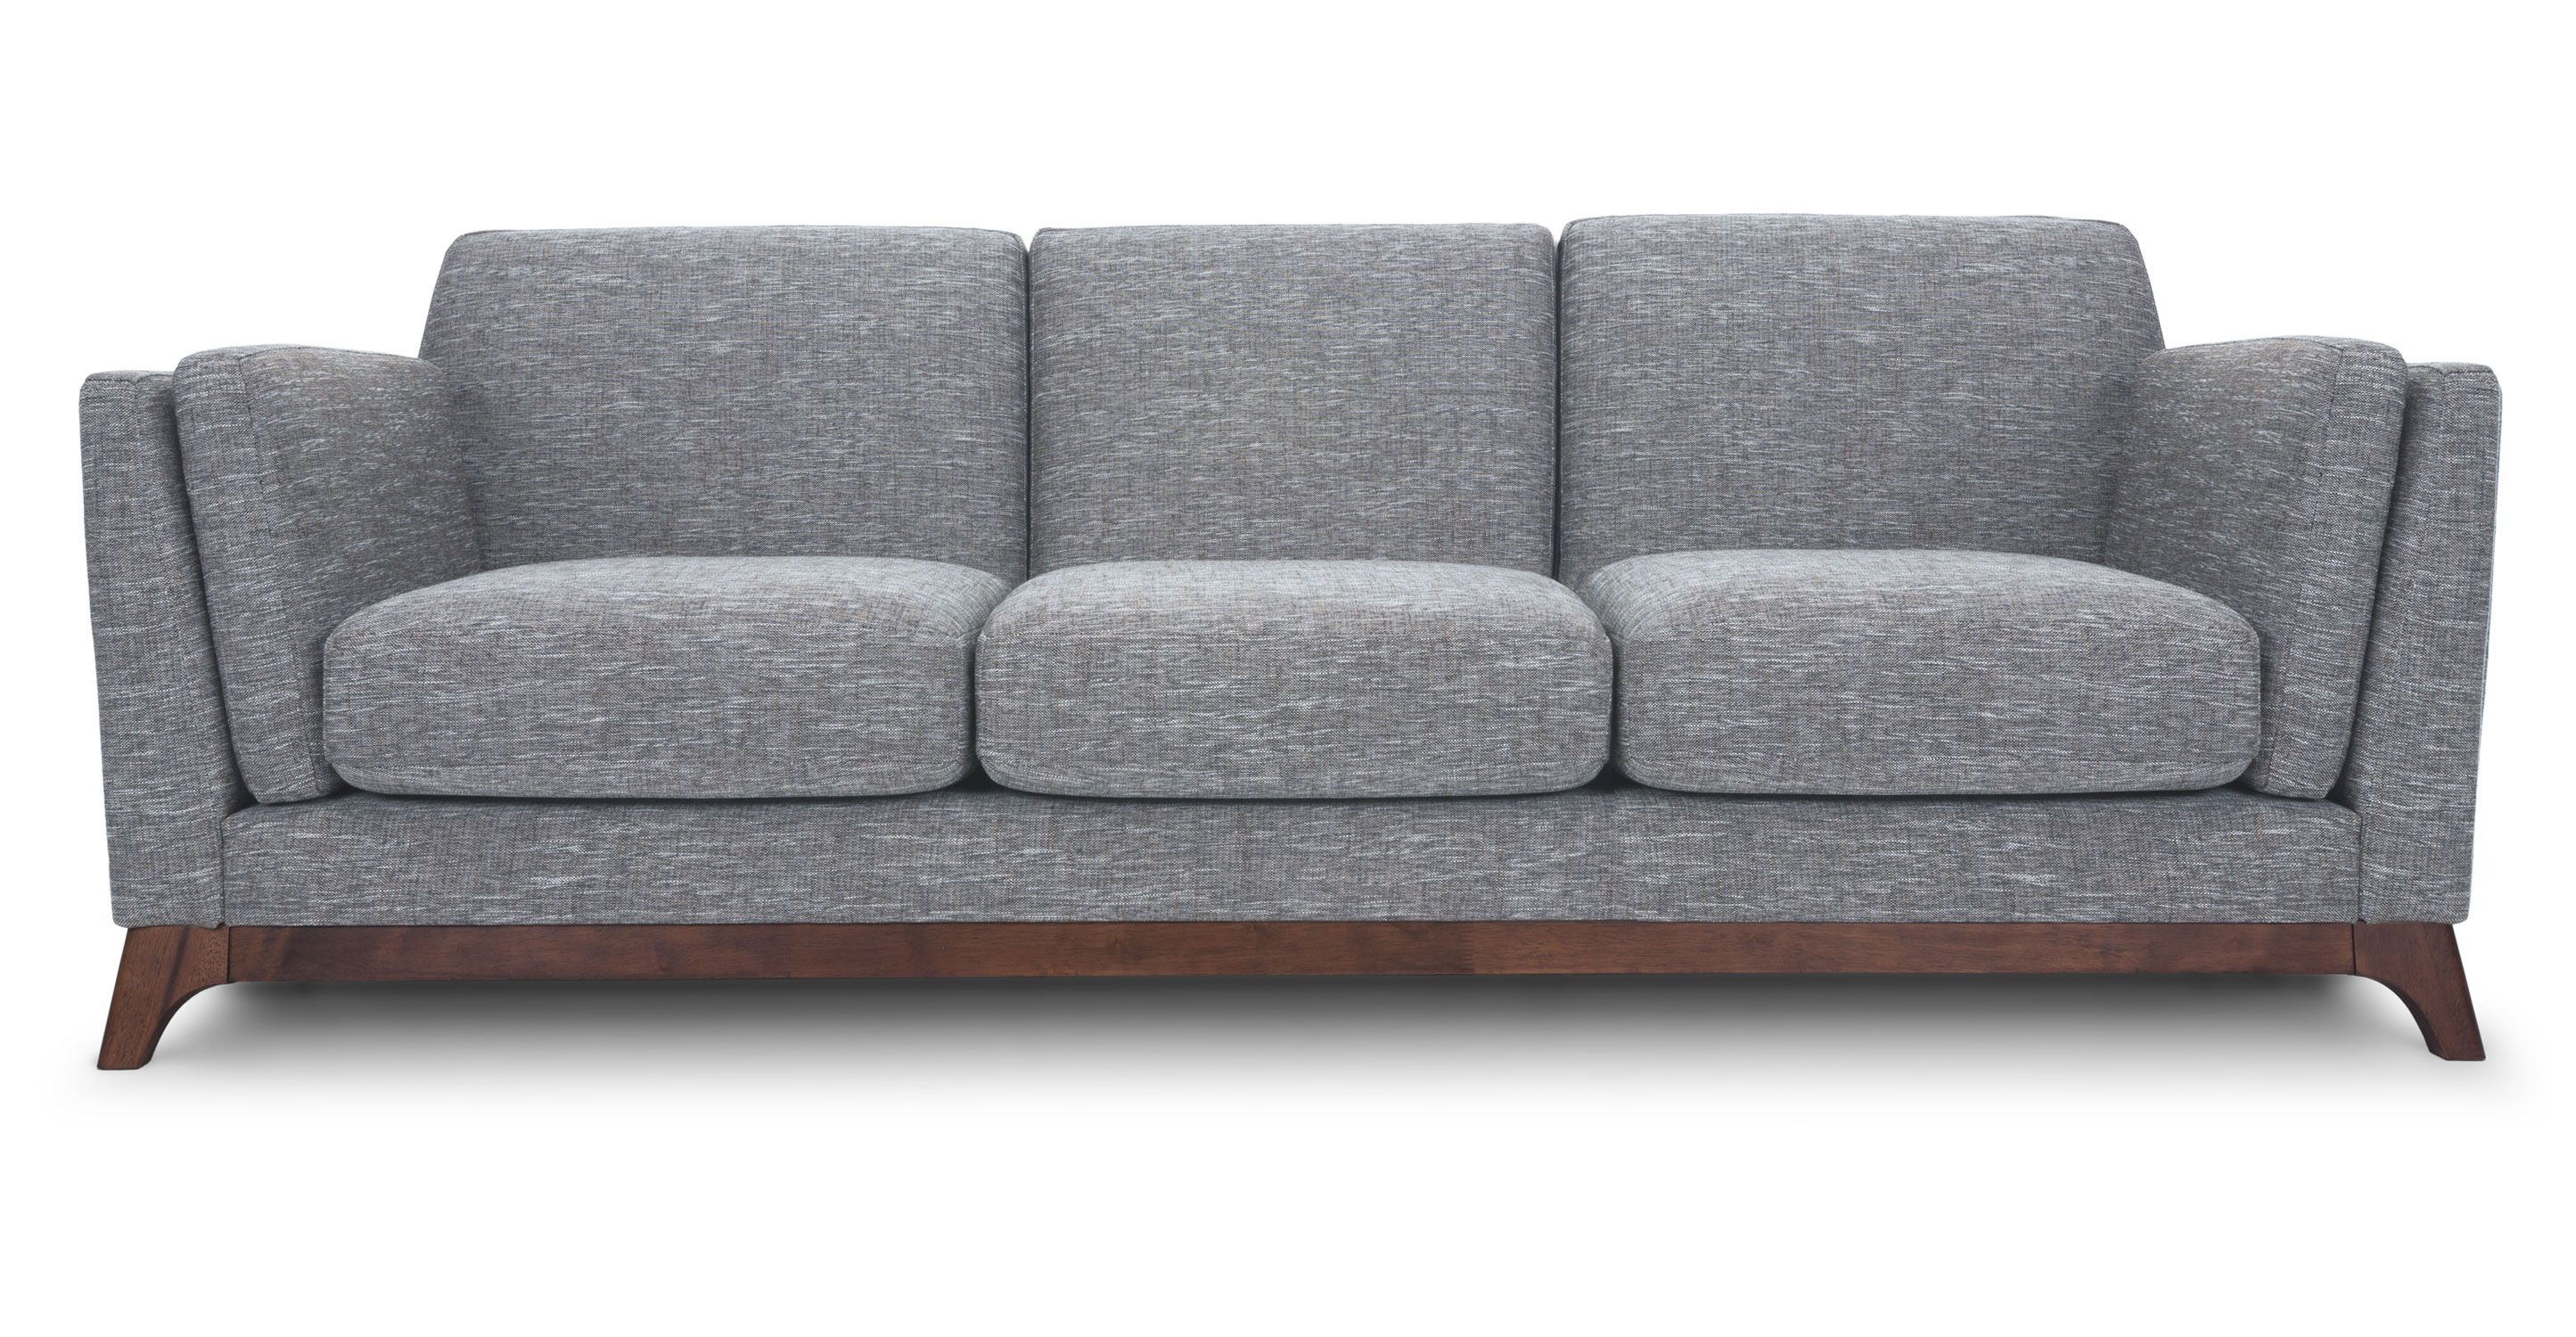 gray sofa 3 seater with solid wood legs article ceni. Black Bedroom Furniture Sets. Home Design Ideas